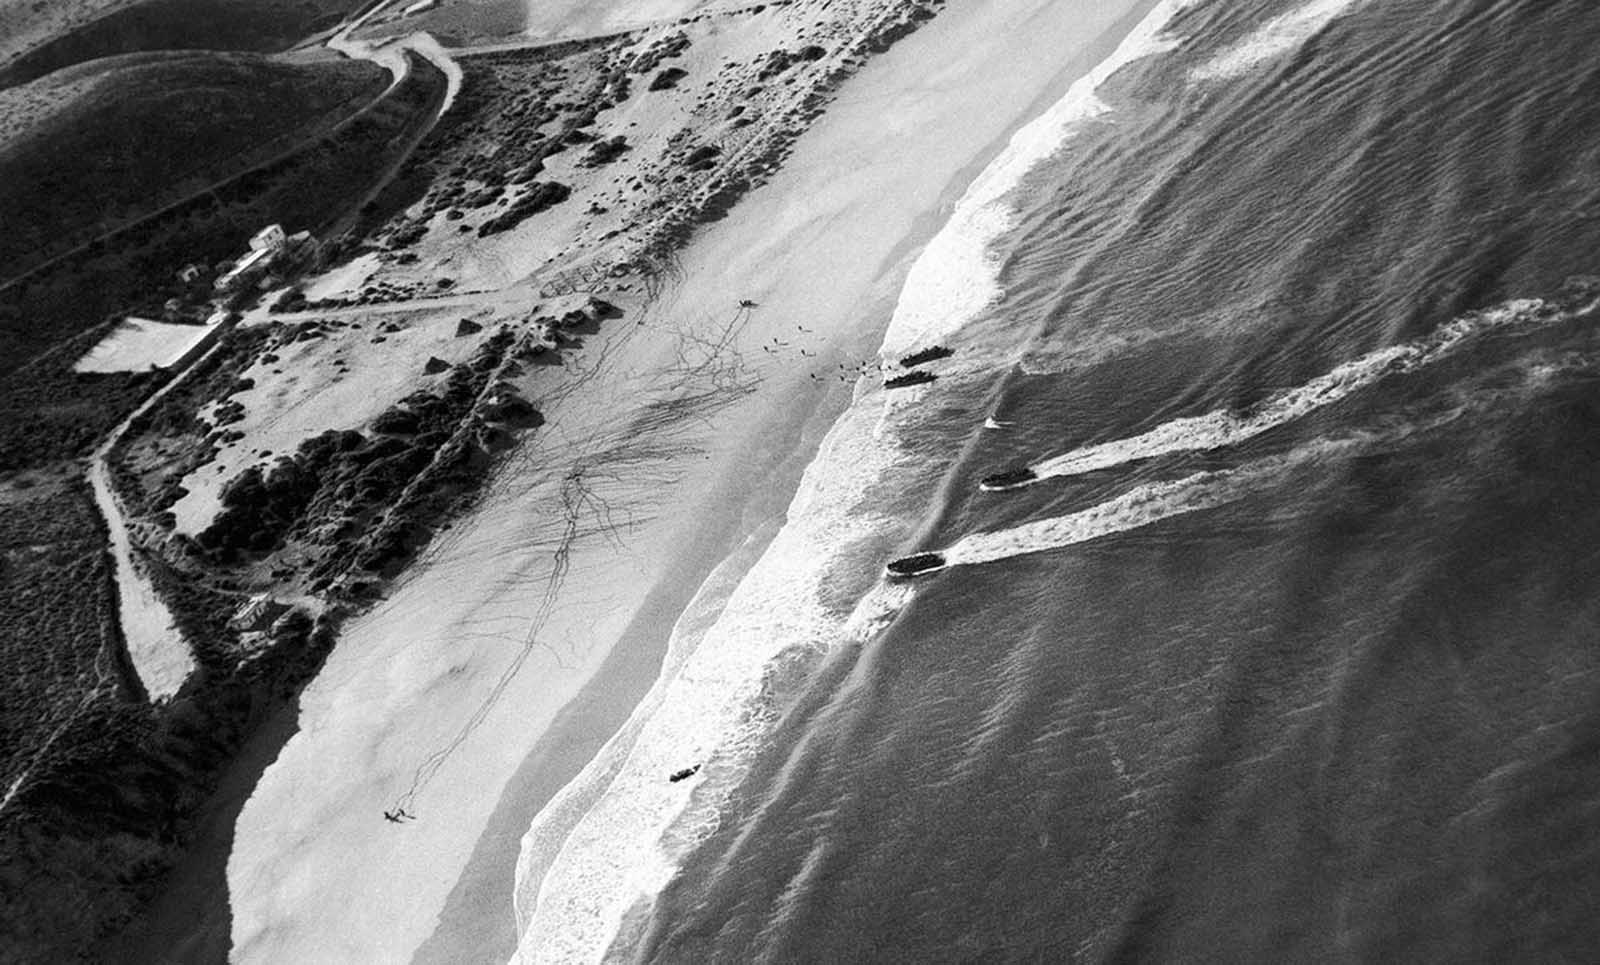 Allied troops land and follow the spider webs of footprints left by first parties near Casablanca, French Morocco, in November of 1942.